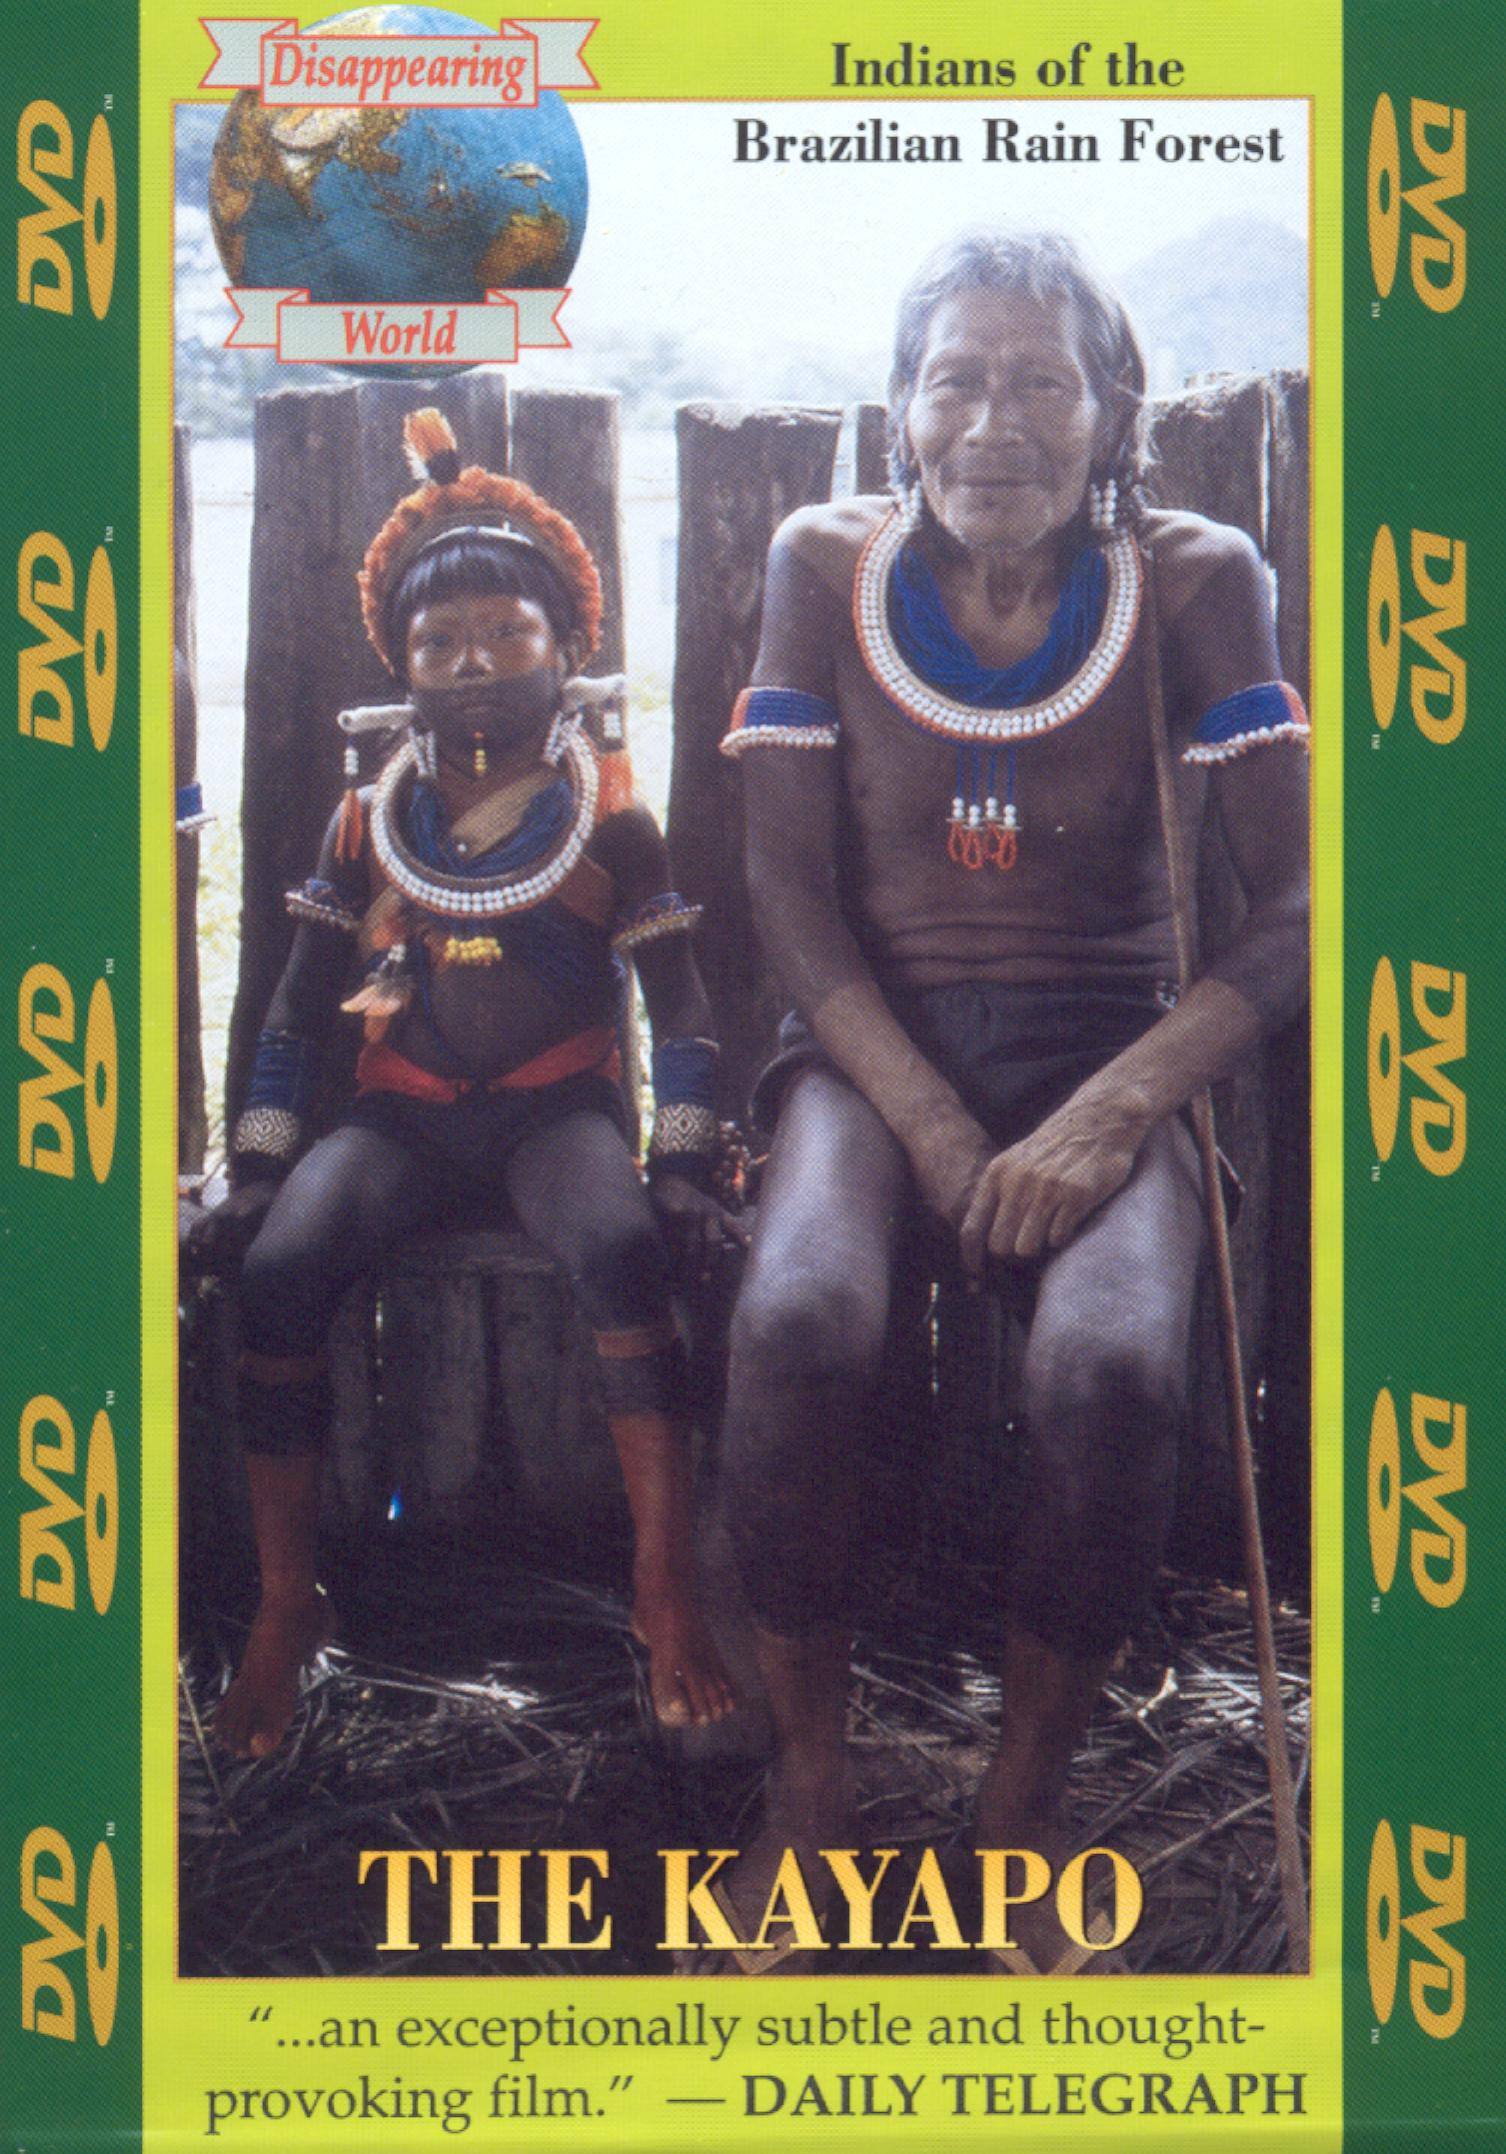 Disappearing World: The Kayapo - Indians of the Brazilian Rain Forest